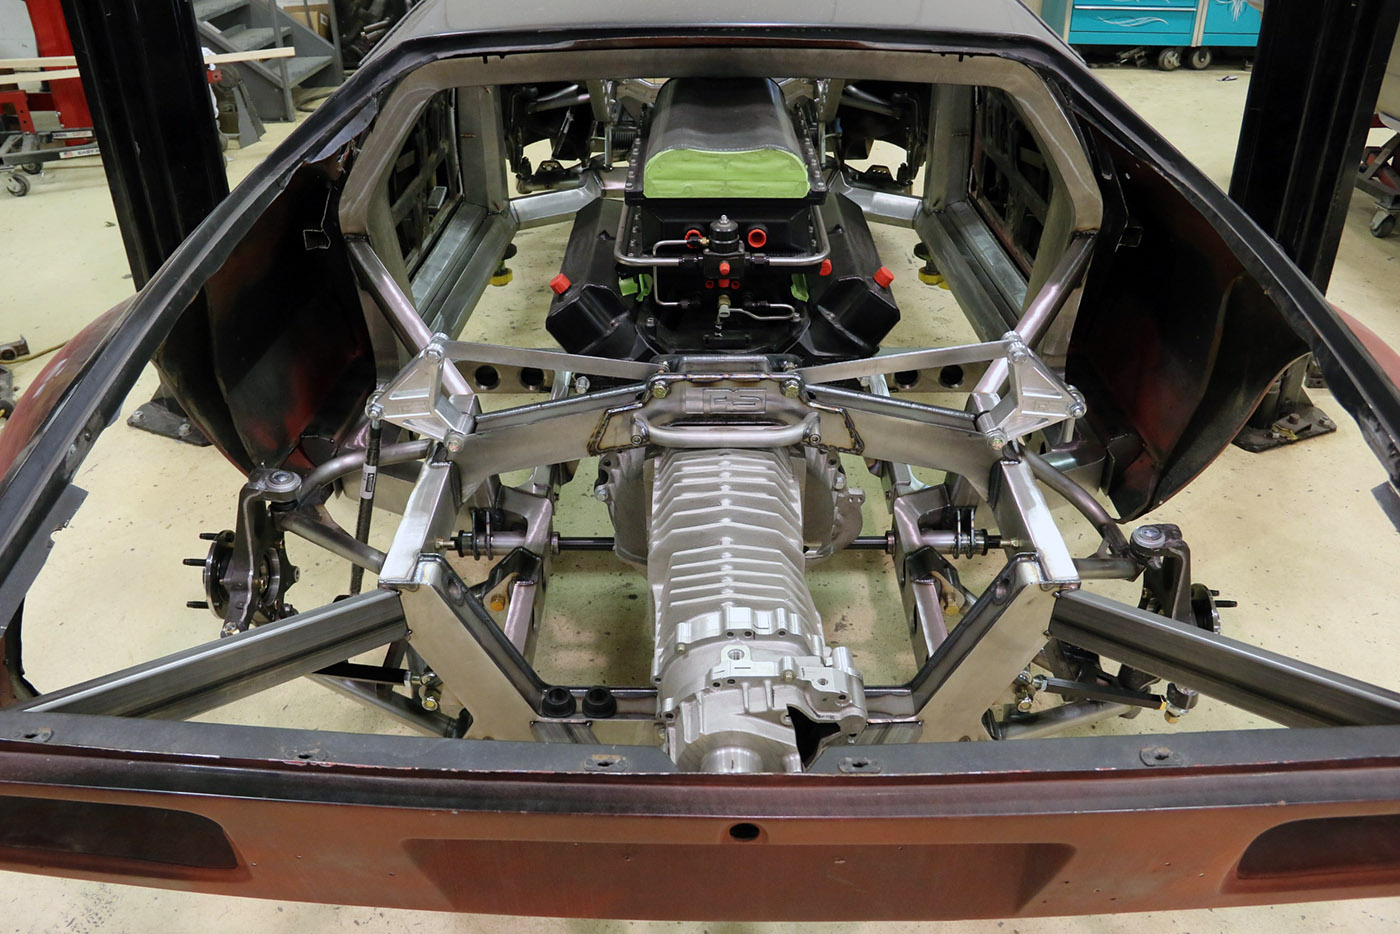 Building A Pantera With A Twin Turbo 428 Windsor